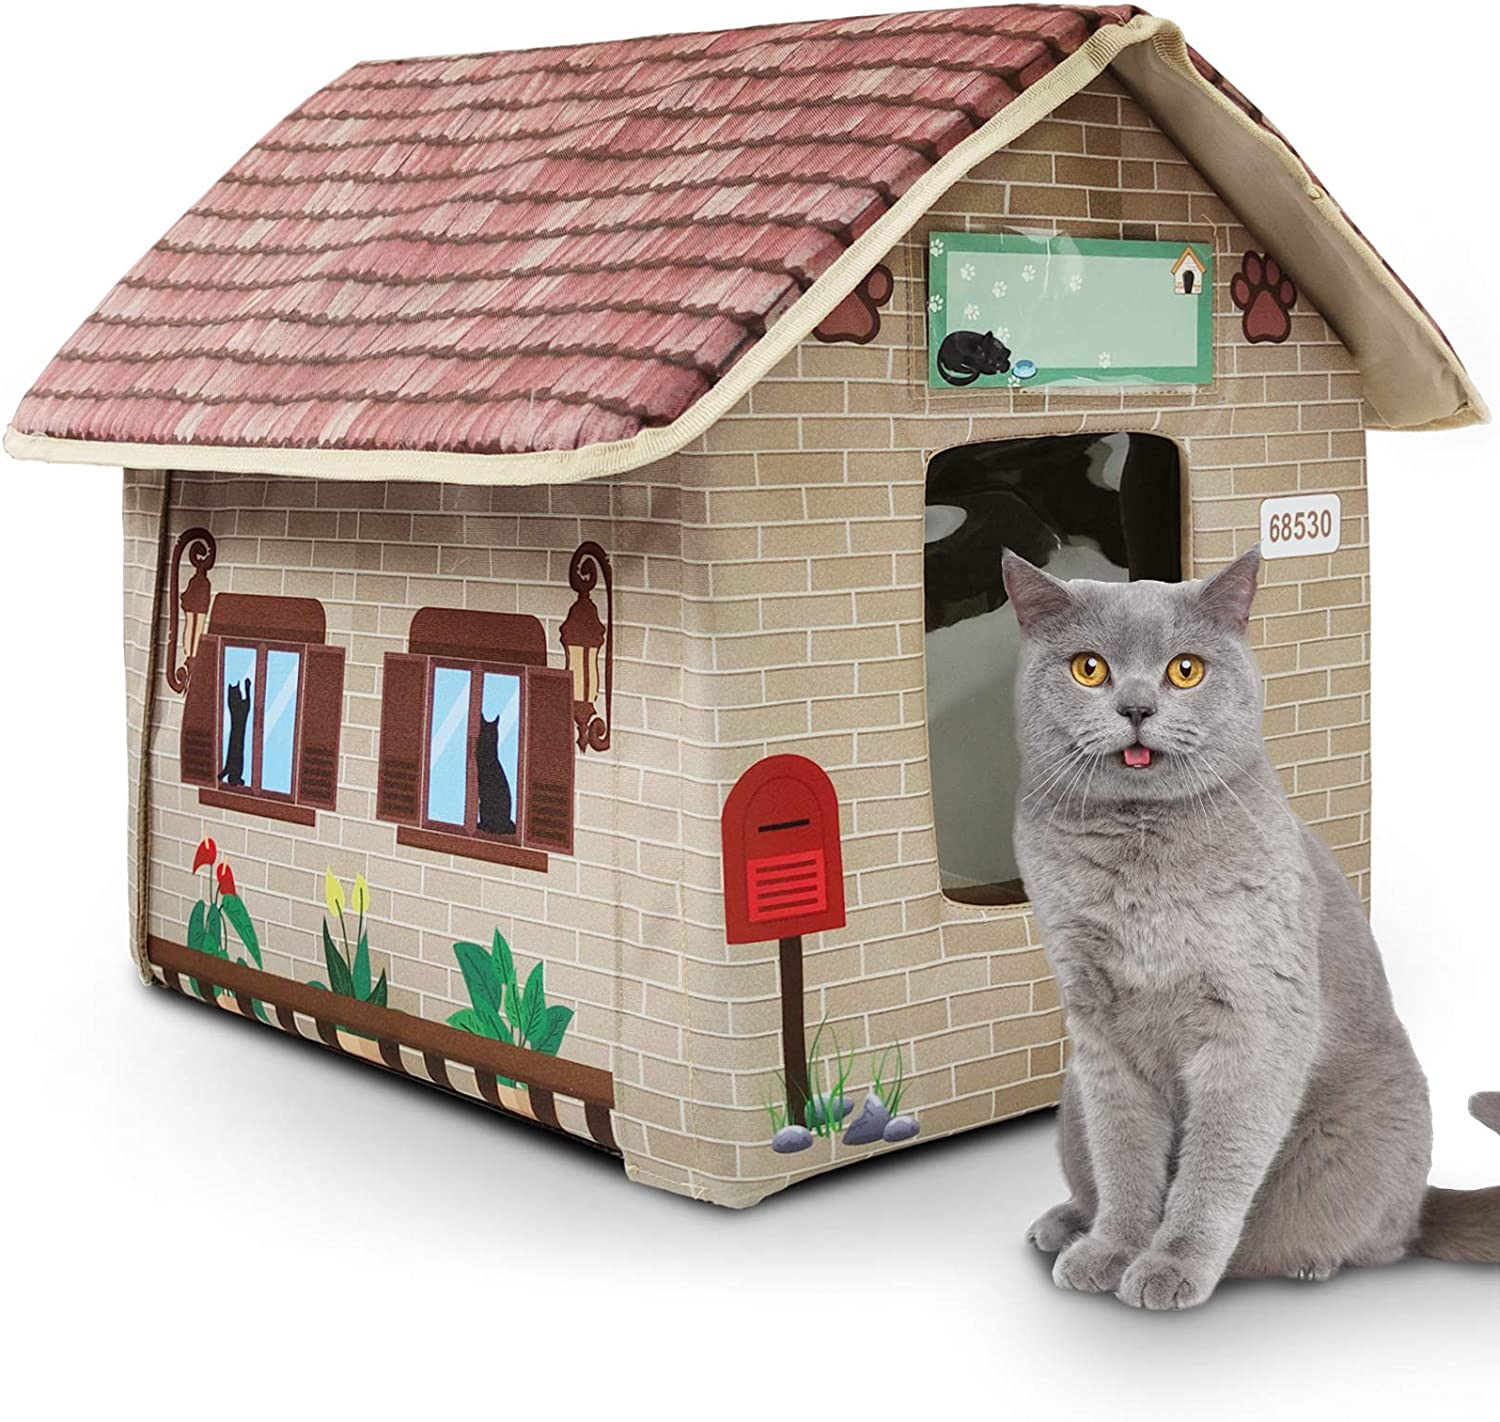 Marunda Cat Houses For Outdoor Cats In Winter Outdoor Cat House Weatherproof And Insulated Easy To Assemble Pet Supplies